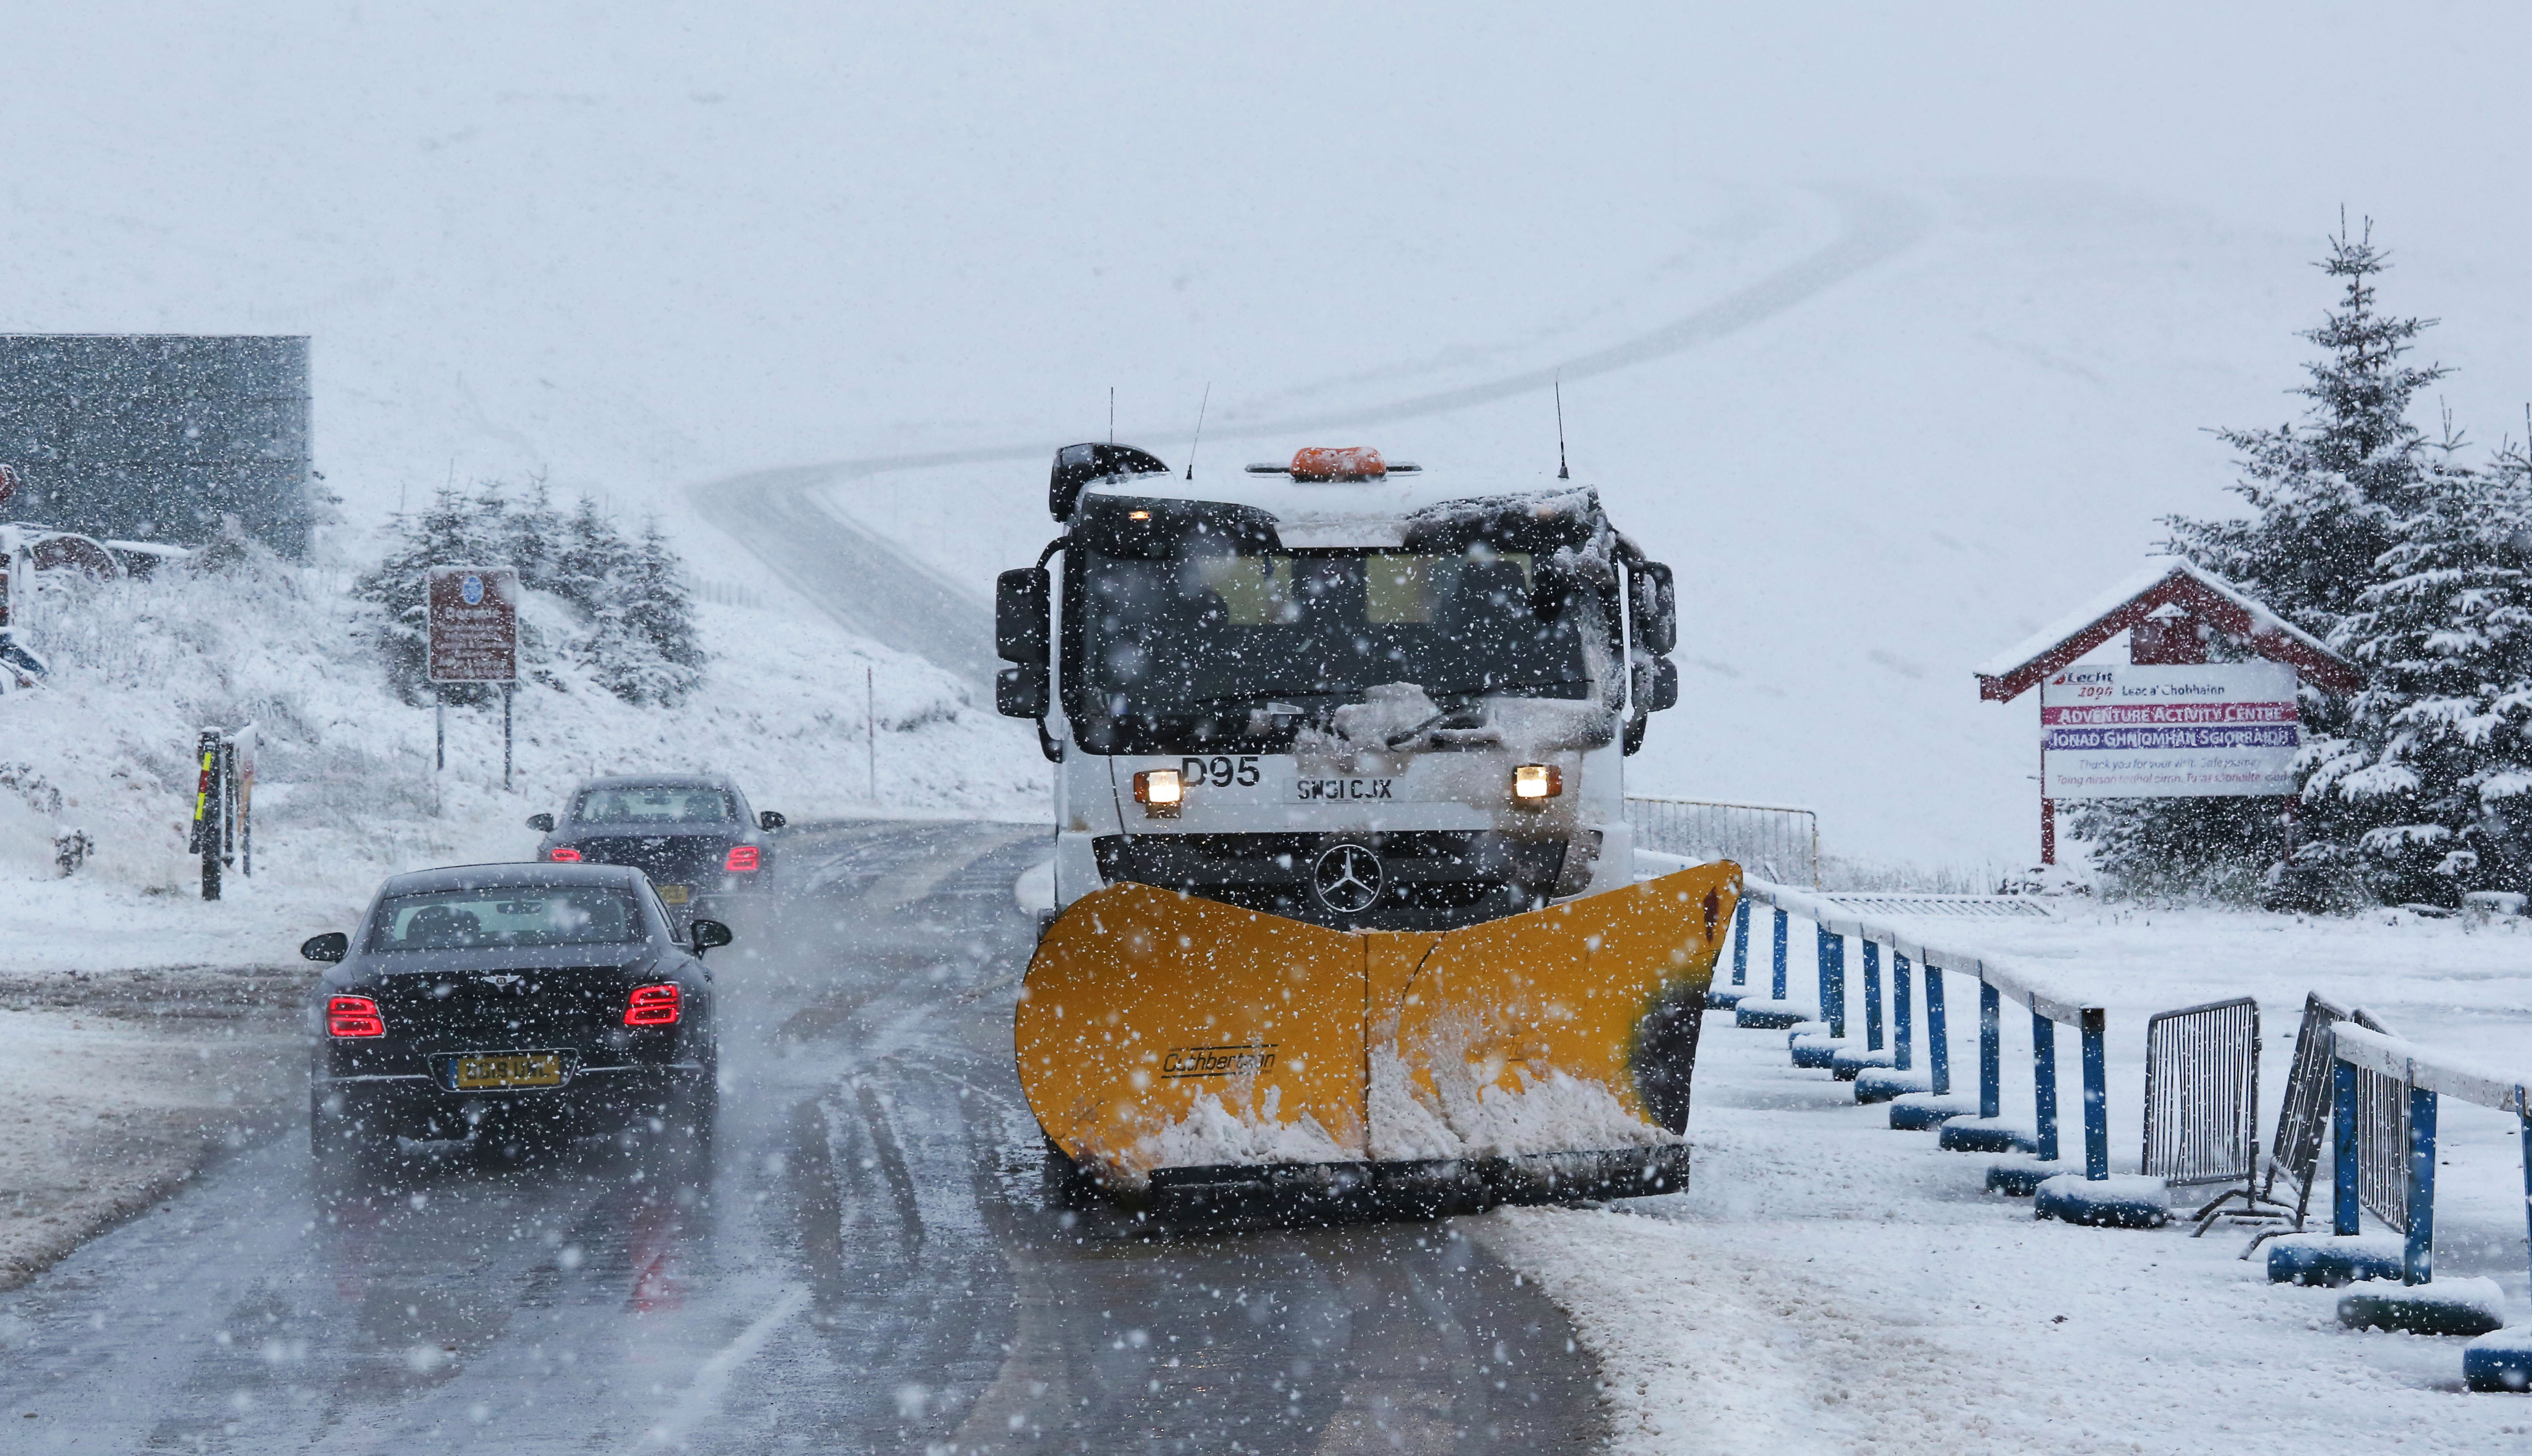 Snowploughs were spotted on the A939 which runs between Cockbridge and Tomintoul